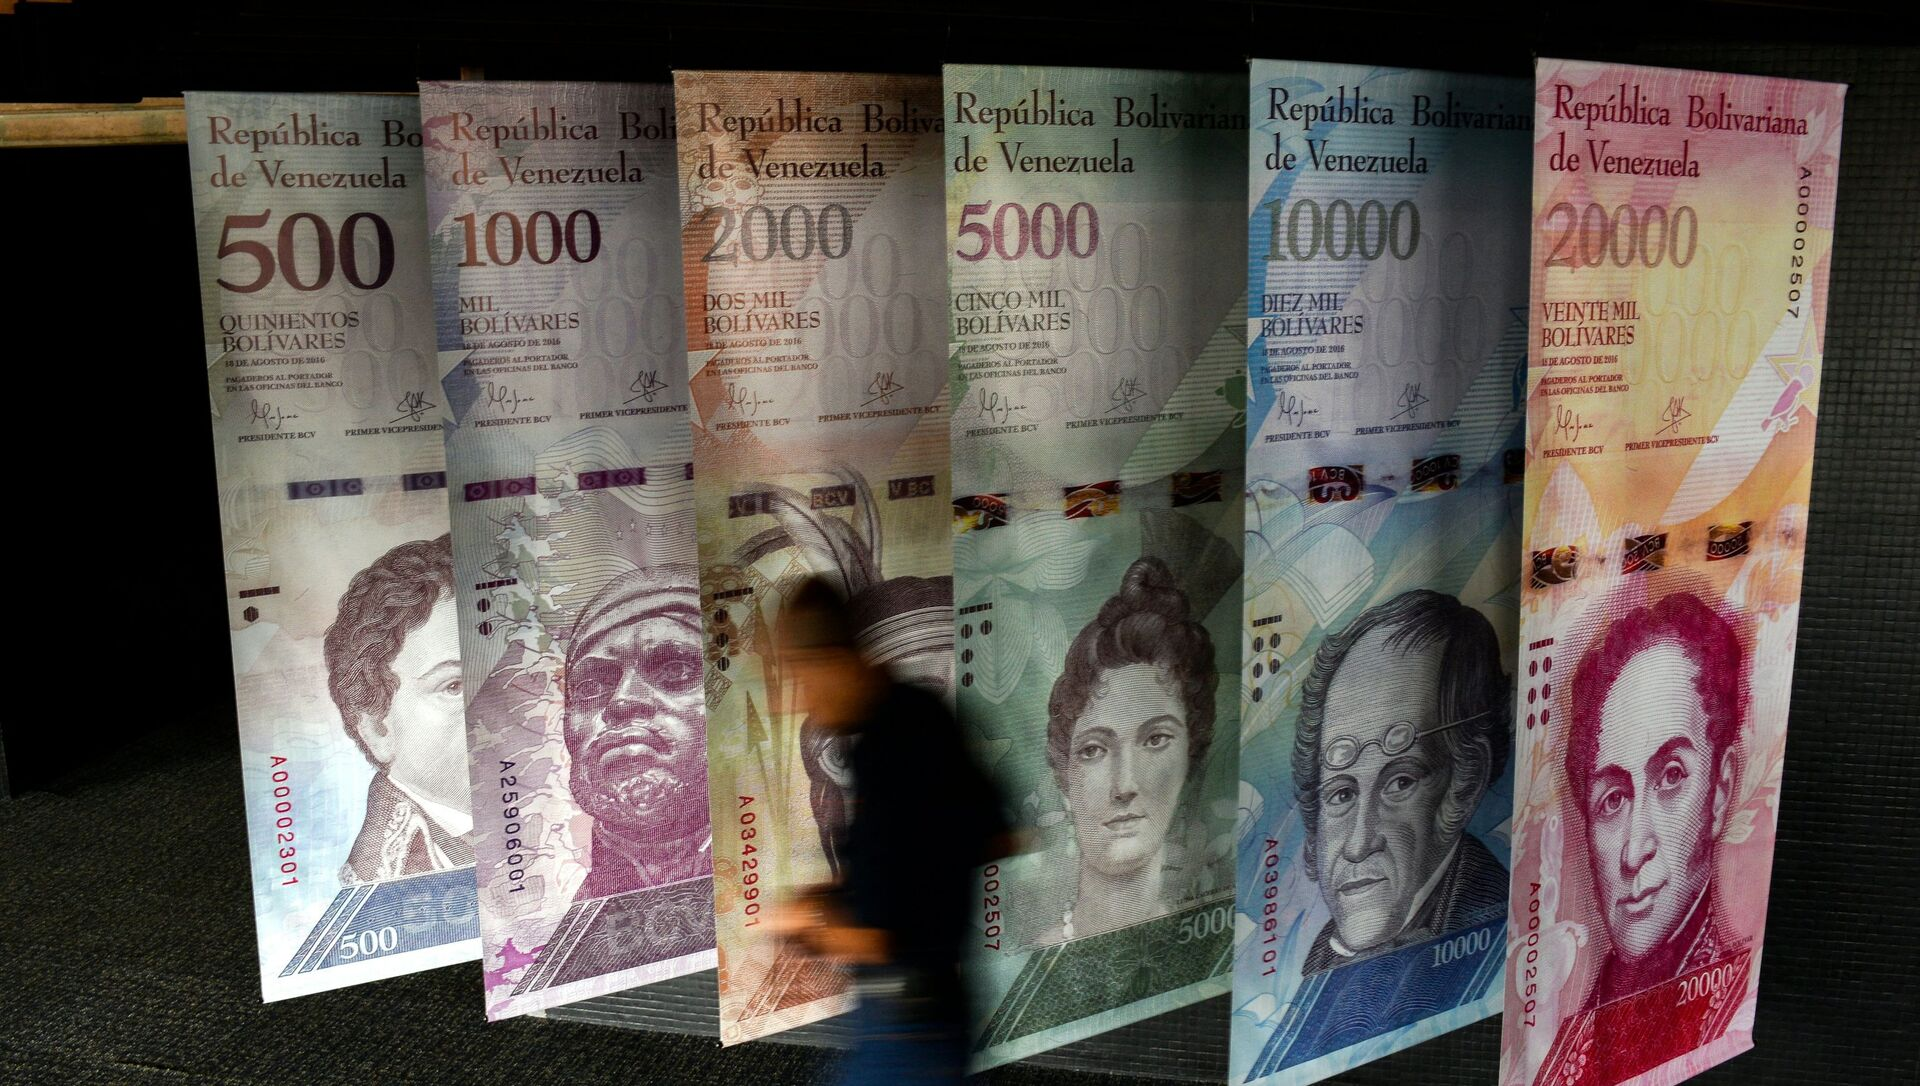 A man walks past banners showing banners depicting Venezuela's currency, the Bolivar, at the Central Bank of Venezuela (BCV) in Caracas on January 31, 2018.  - Sputnik International, 1920, 05.08.2021